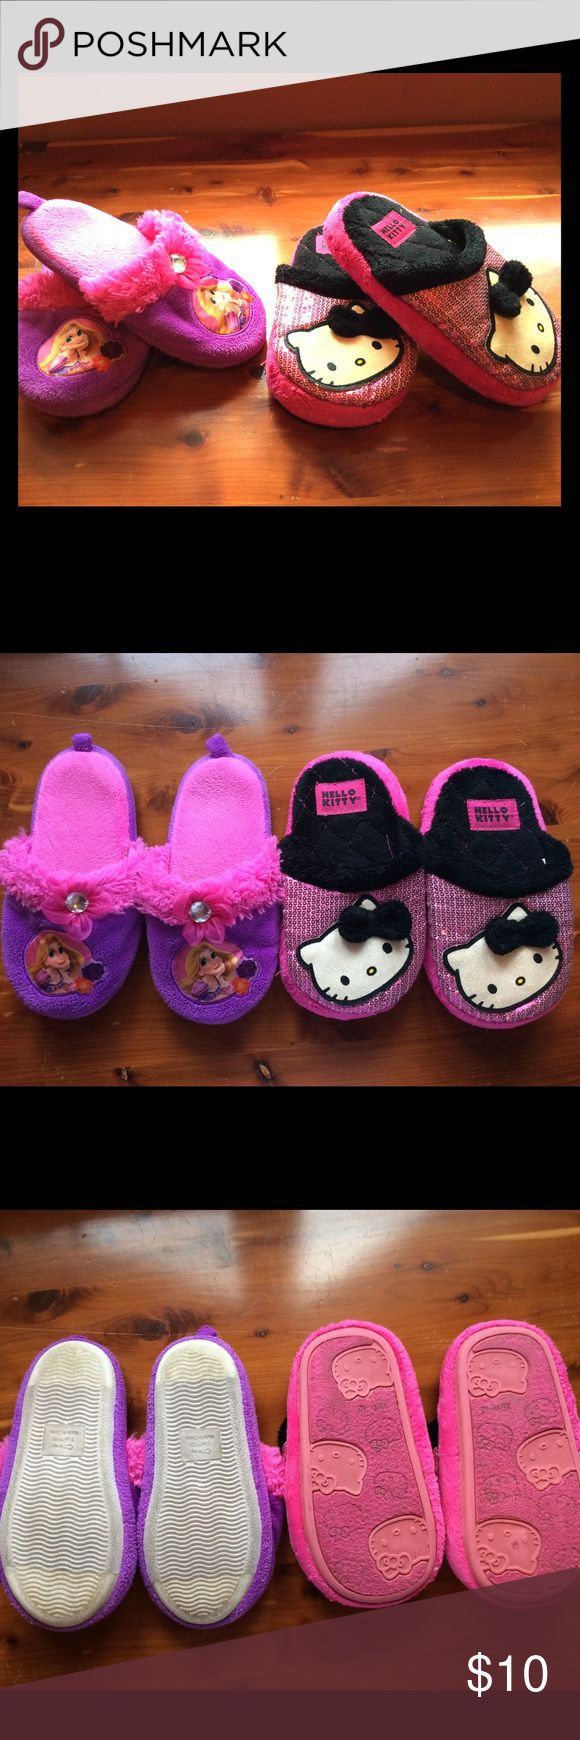 Disney Rapunzel & Hello Kitty slippers 😻 Two pair of slippers just perfect for your princess! Both size 11/12 and in good used condition. Clean, soft, fuzzy, jewels and sequins attached. Soles are good and can walk outside even when it's wet! Great used in a bundle with a discount too!! 😉 disney/hello kitty Shoes Slippers